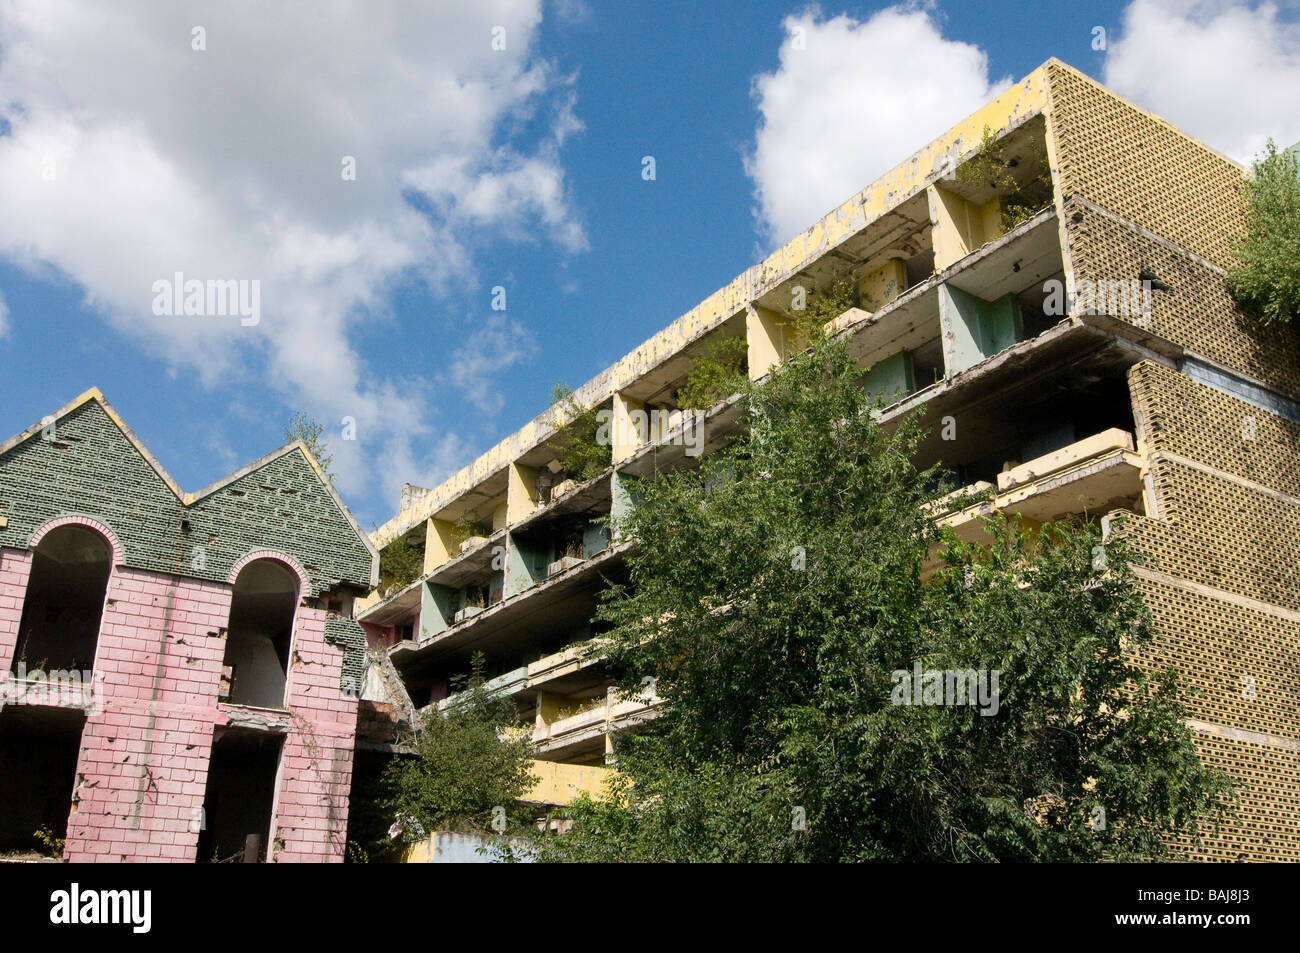 Buildings destroyed by war Sarajevo Bosnia Eastern Europe - Stock Image